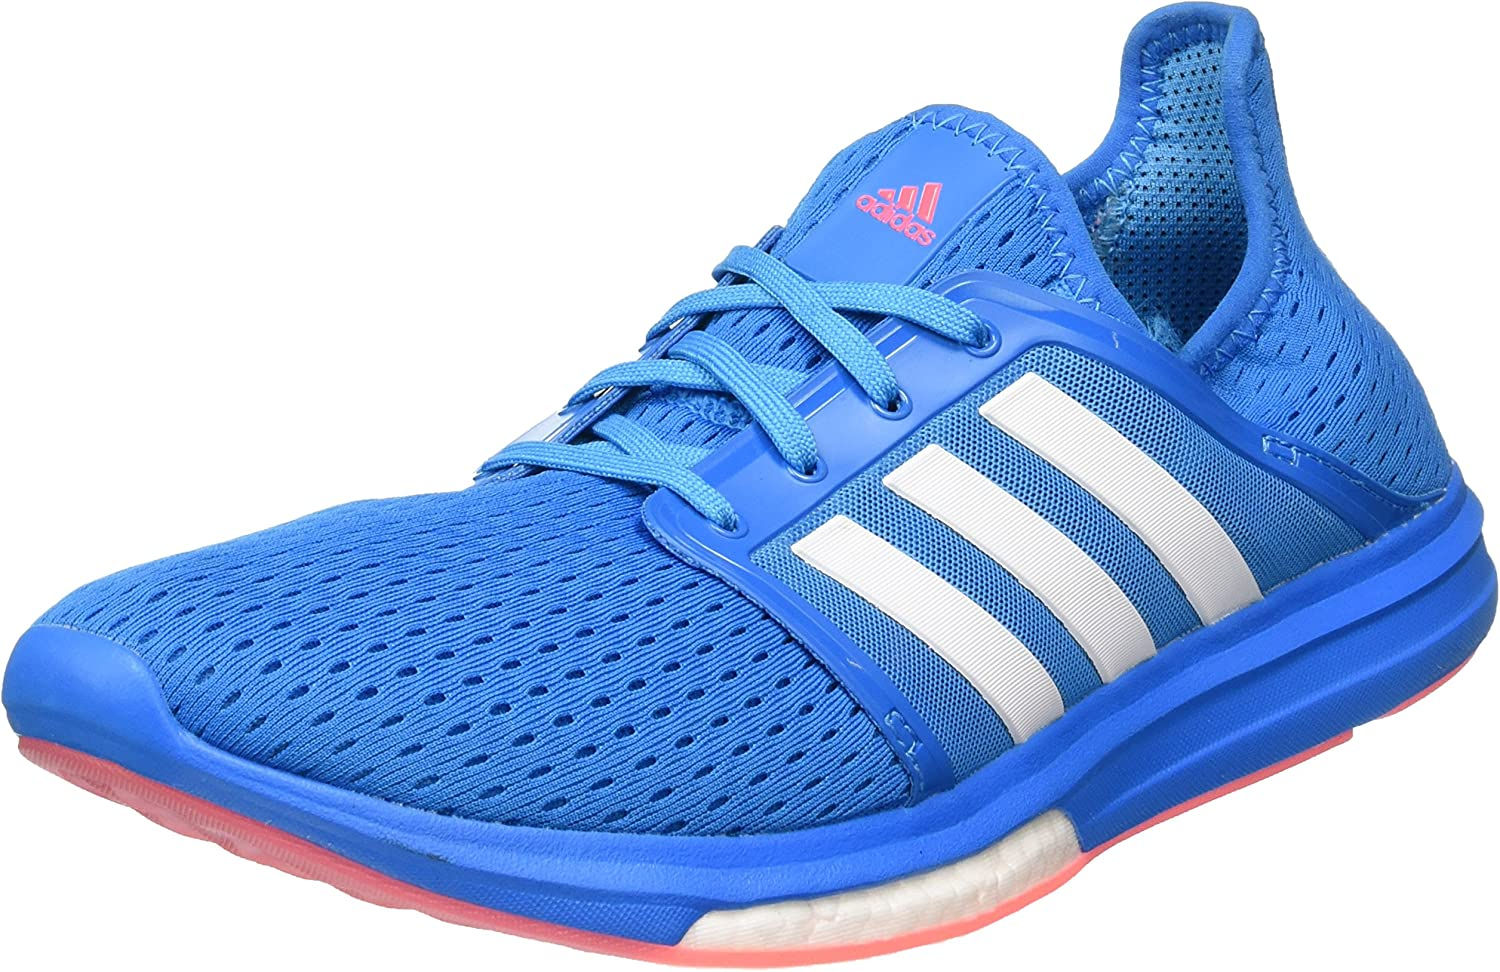 adidas CC Sonic Boost Size 10 Women's Running Shoes Blue: Amazon.co.uk: Shoes & Bags